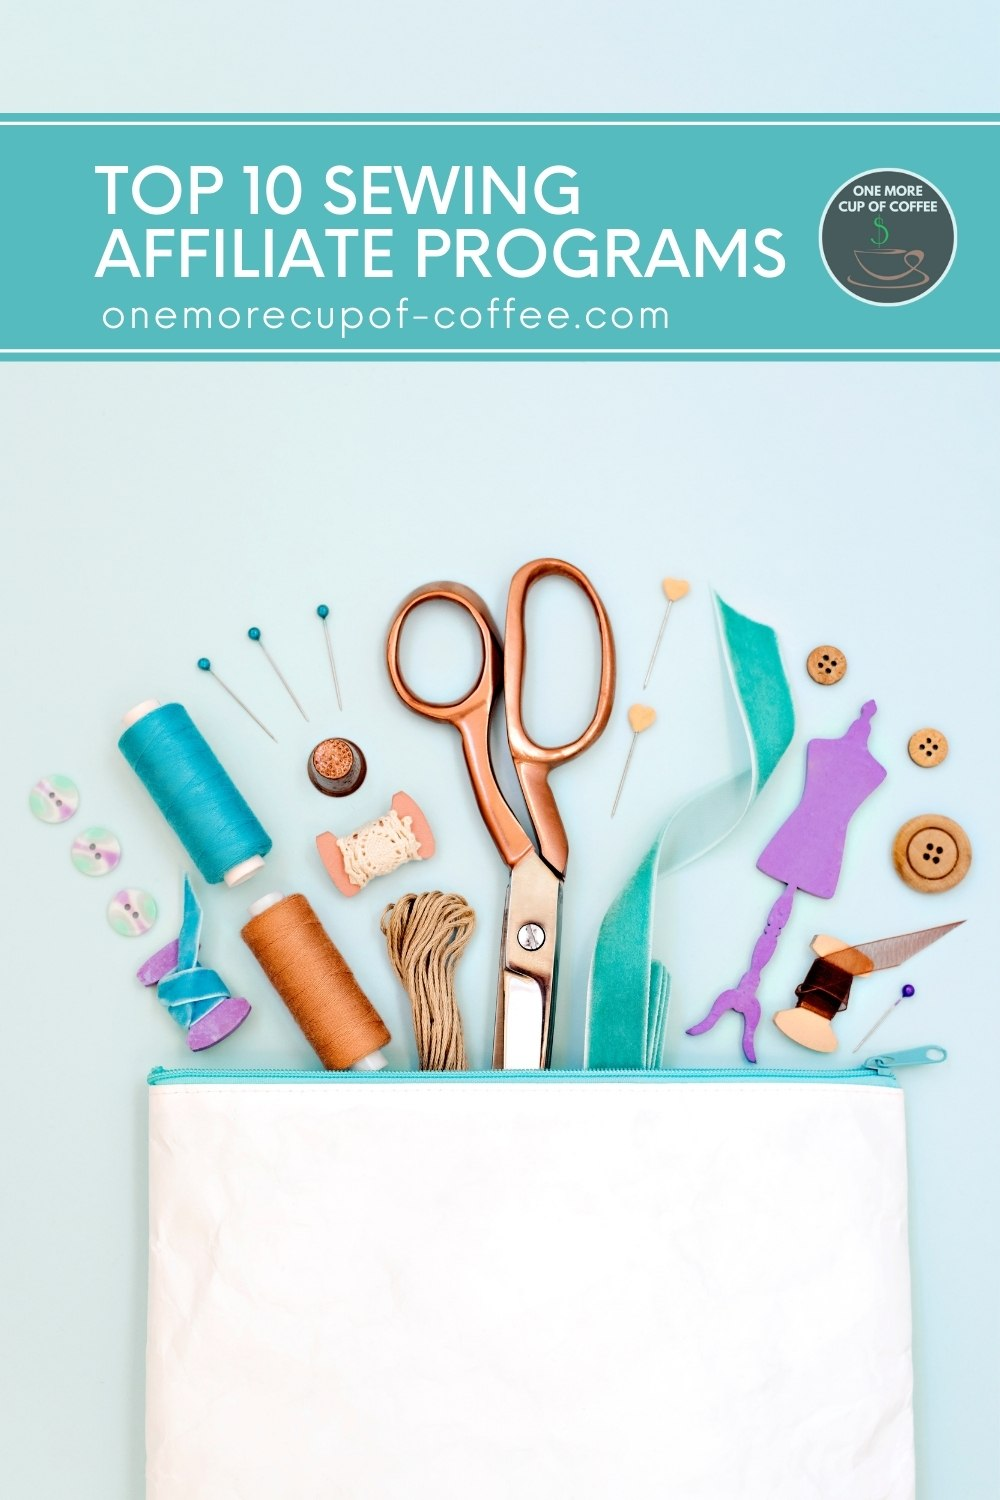 """white bag with blue zipper, with threads, pins, ribbons, a pair of scissors, and buttons, against a blue background; with text overlay in teal banner """"Top 10 Sewing Affiliate Programs"""""""